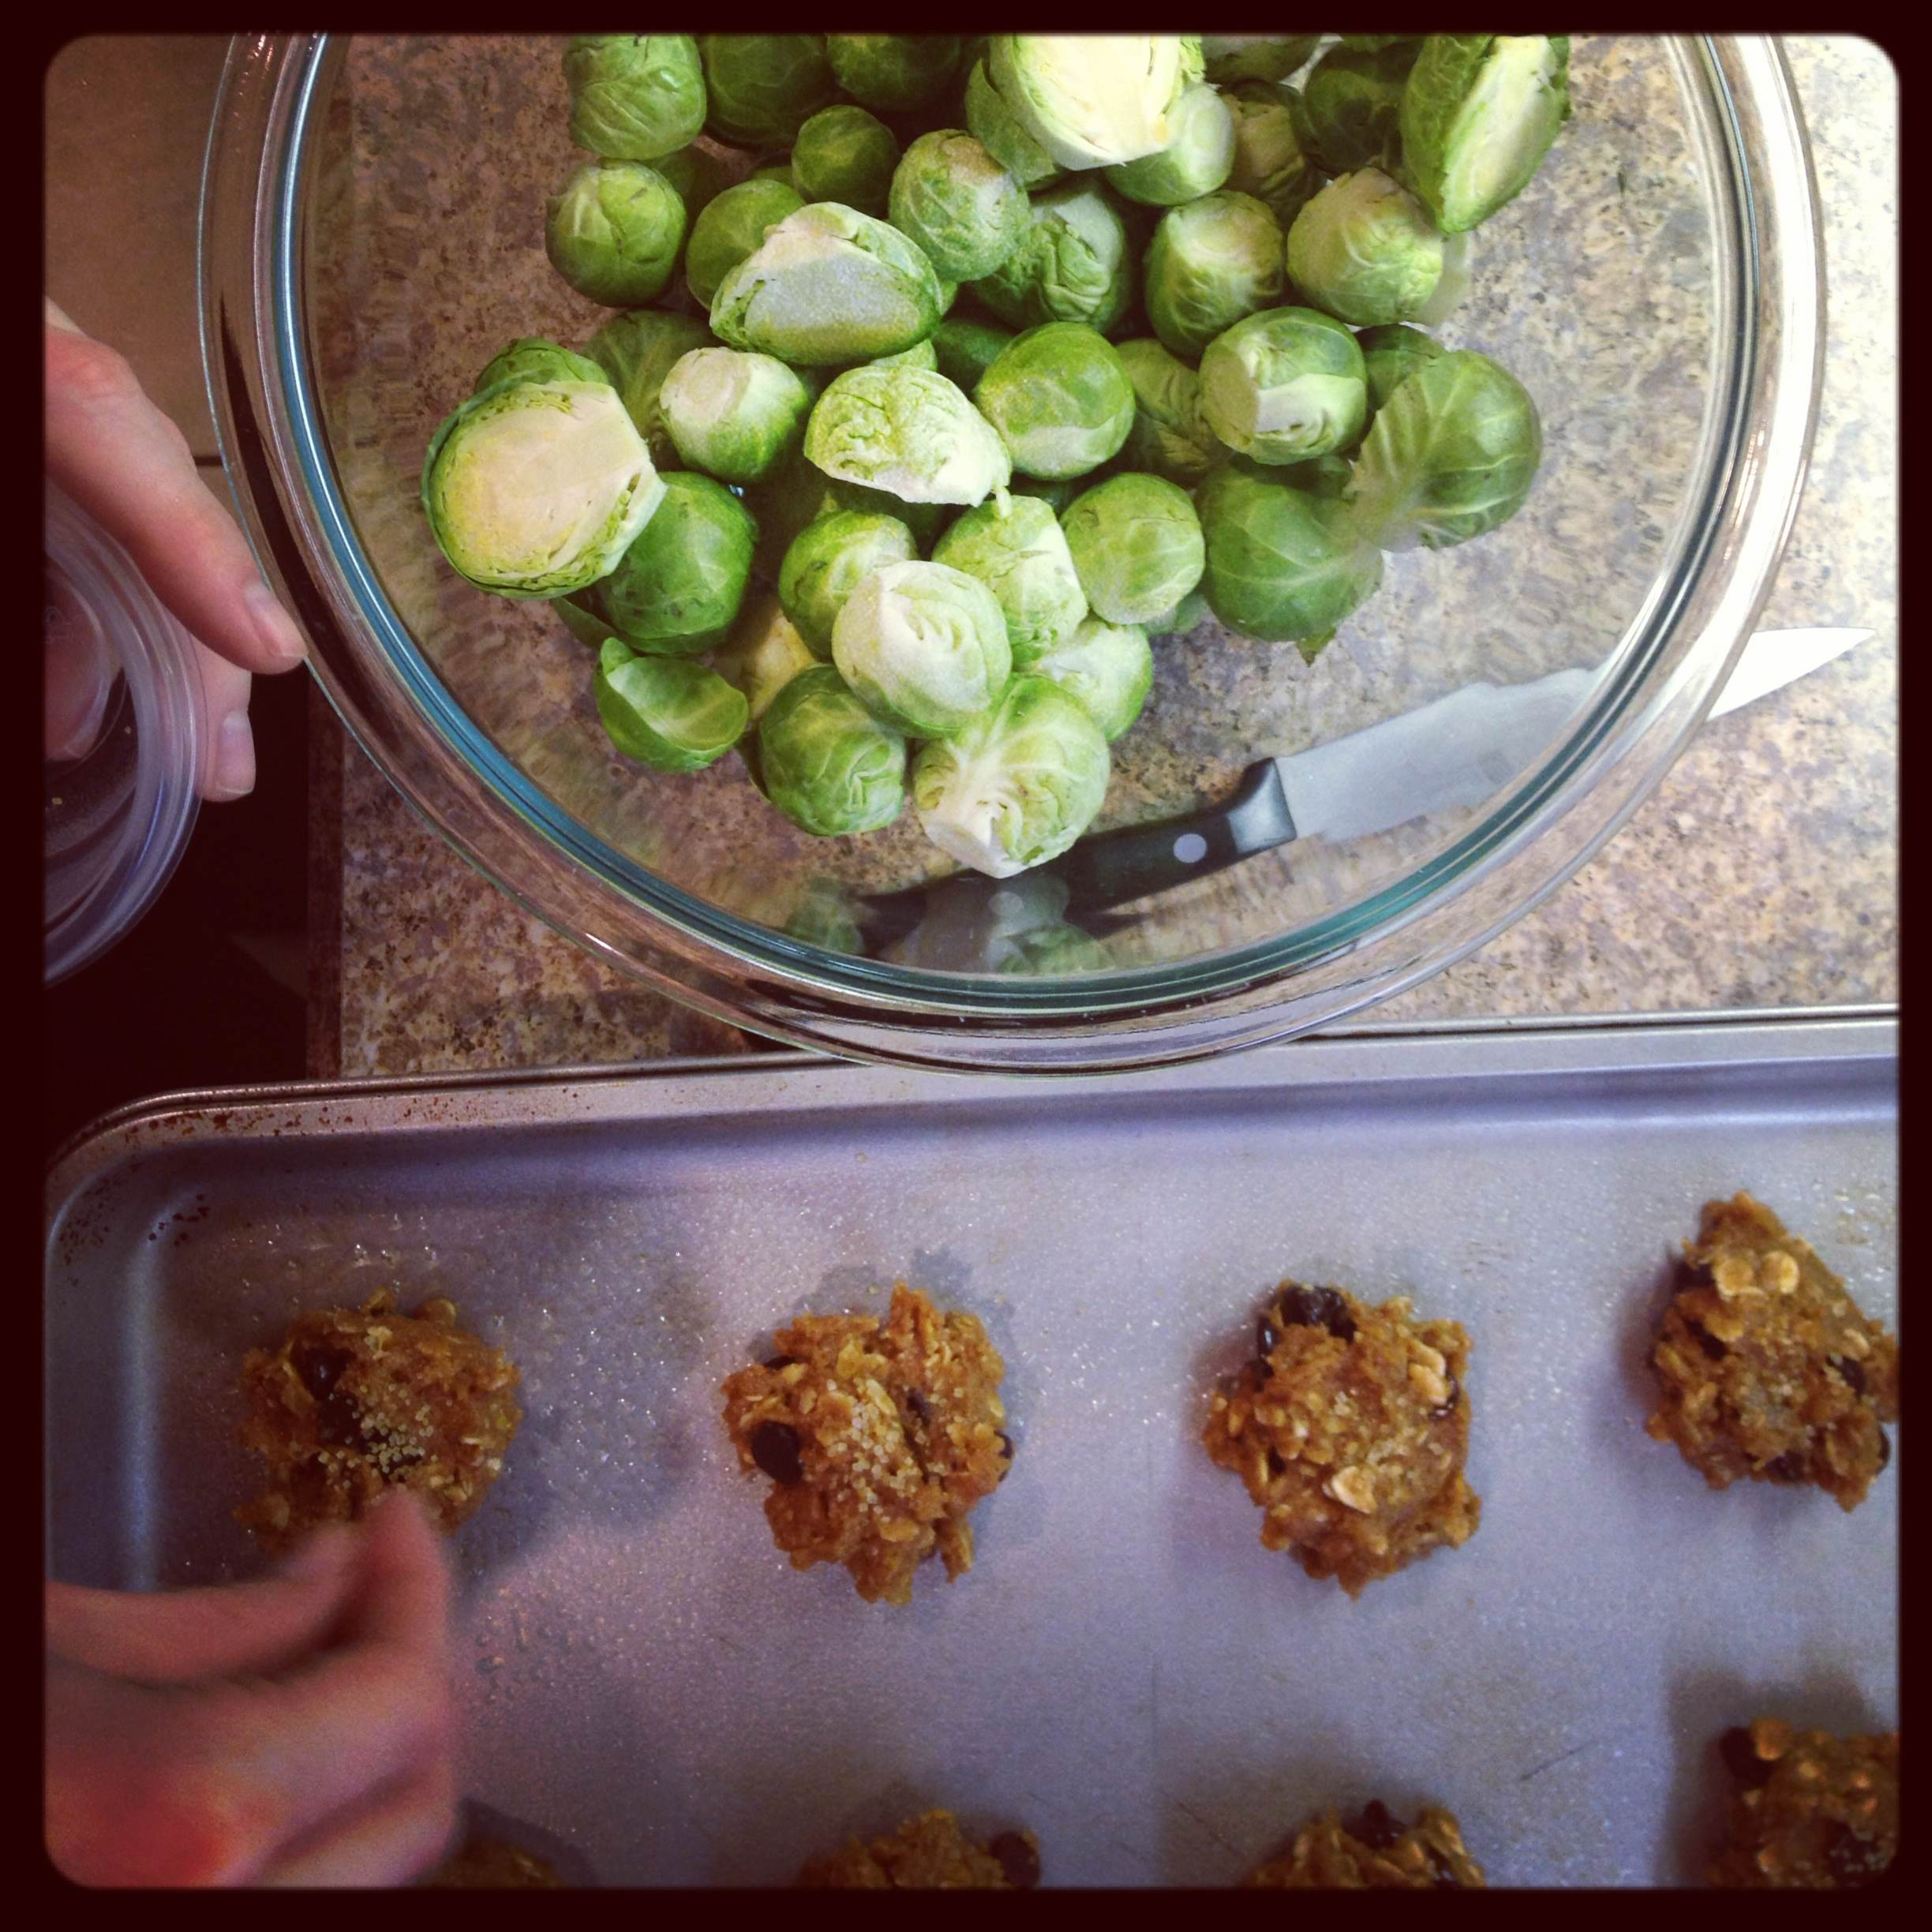 cookies and brussel sprouts.jpg